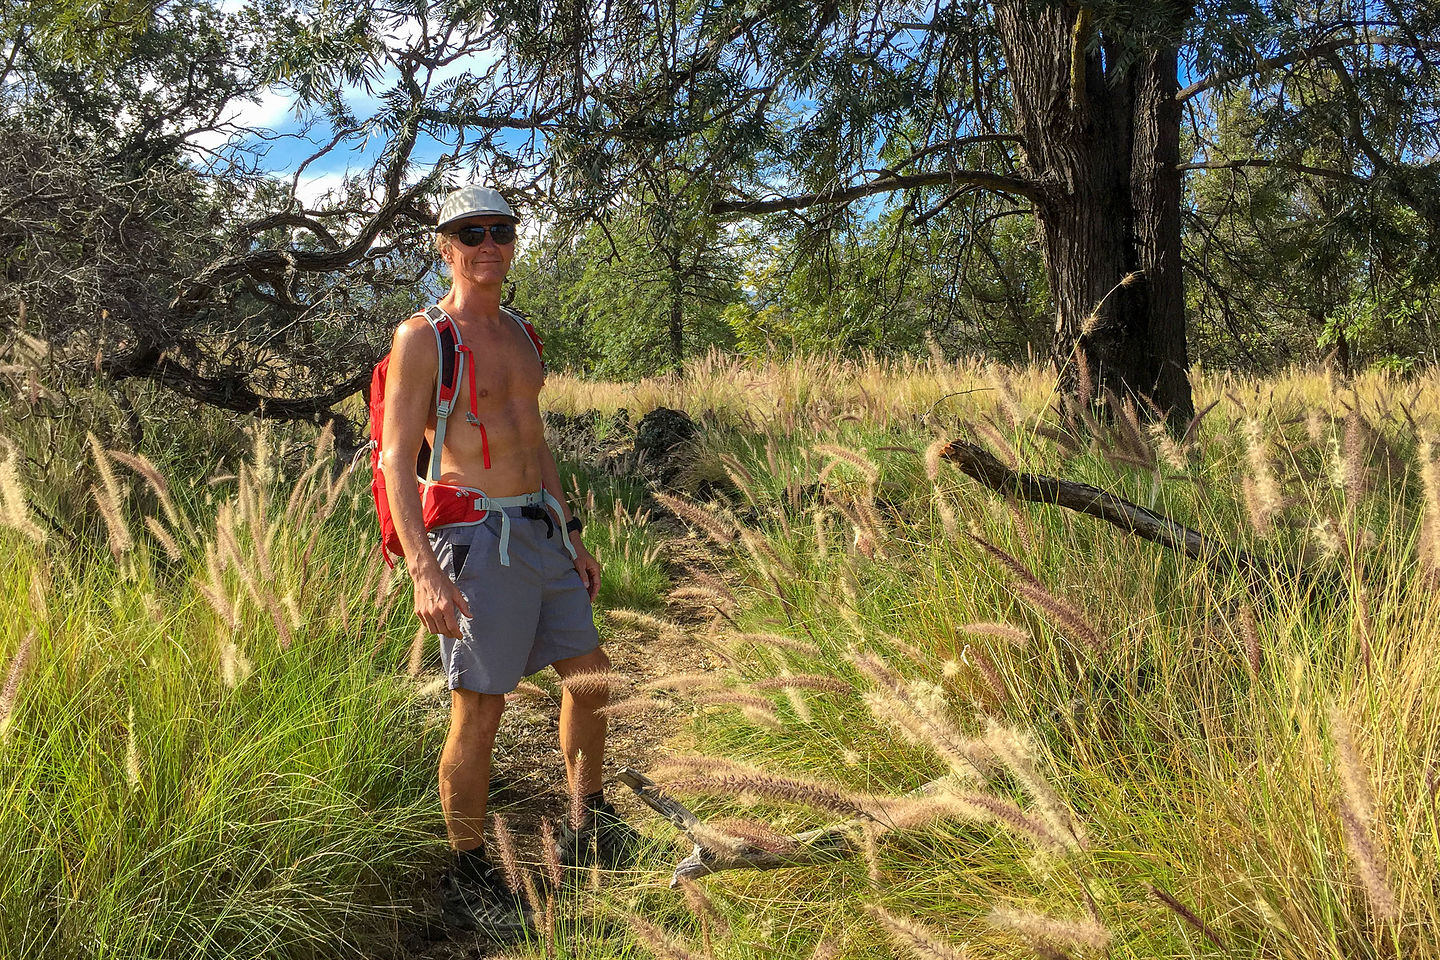 The Pu'u Wa'awa'a cinder cone hike begins